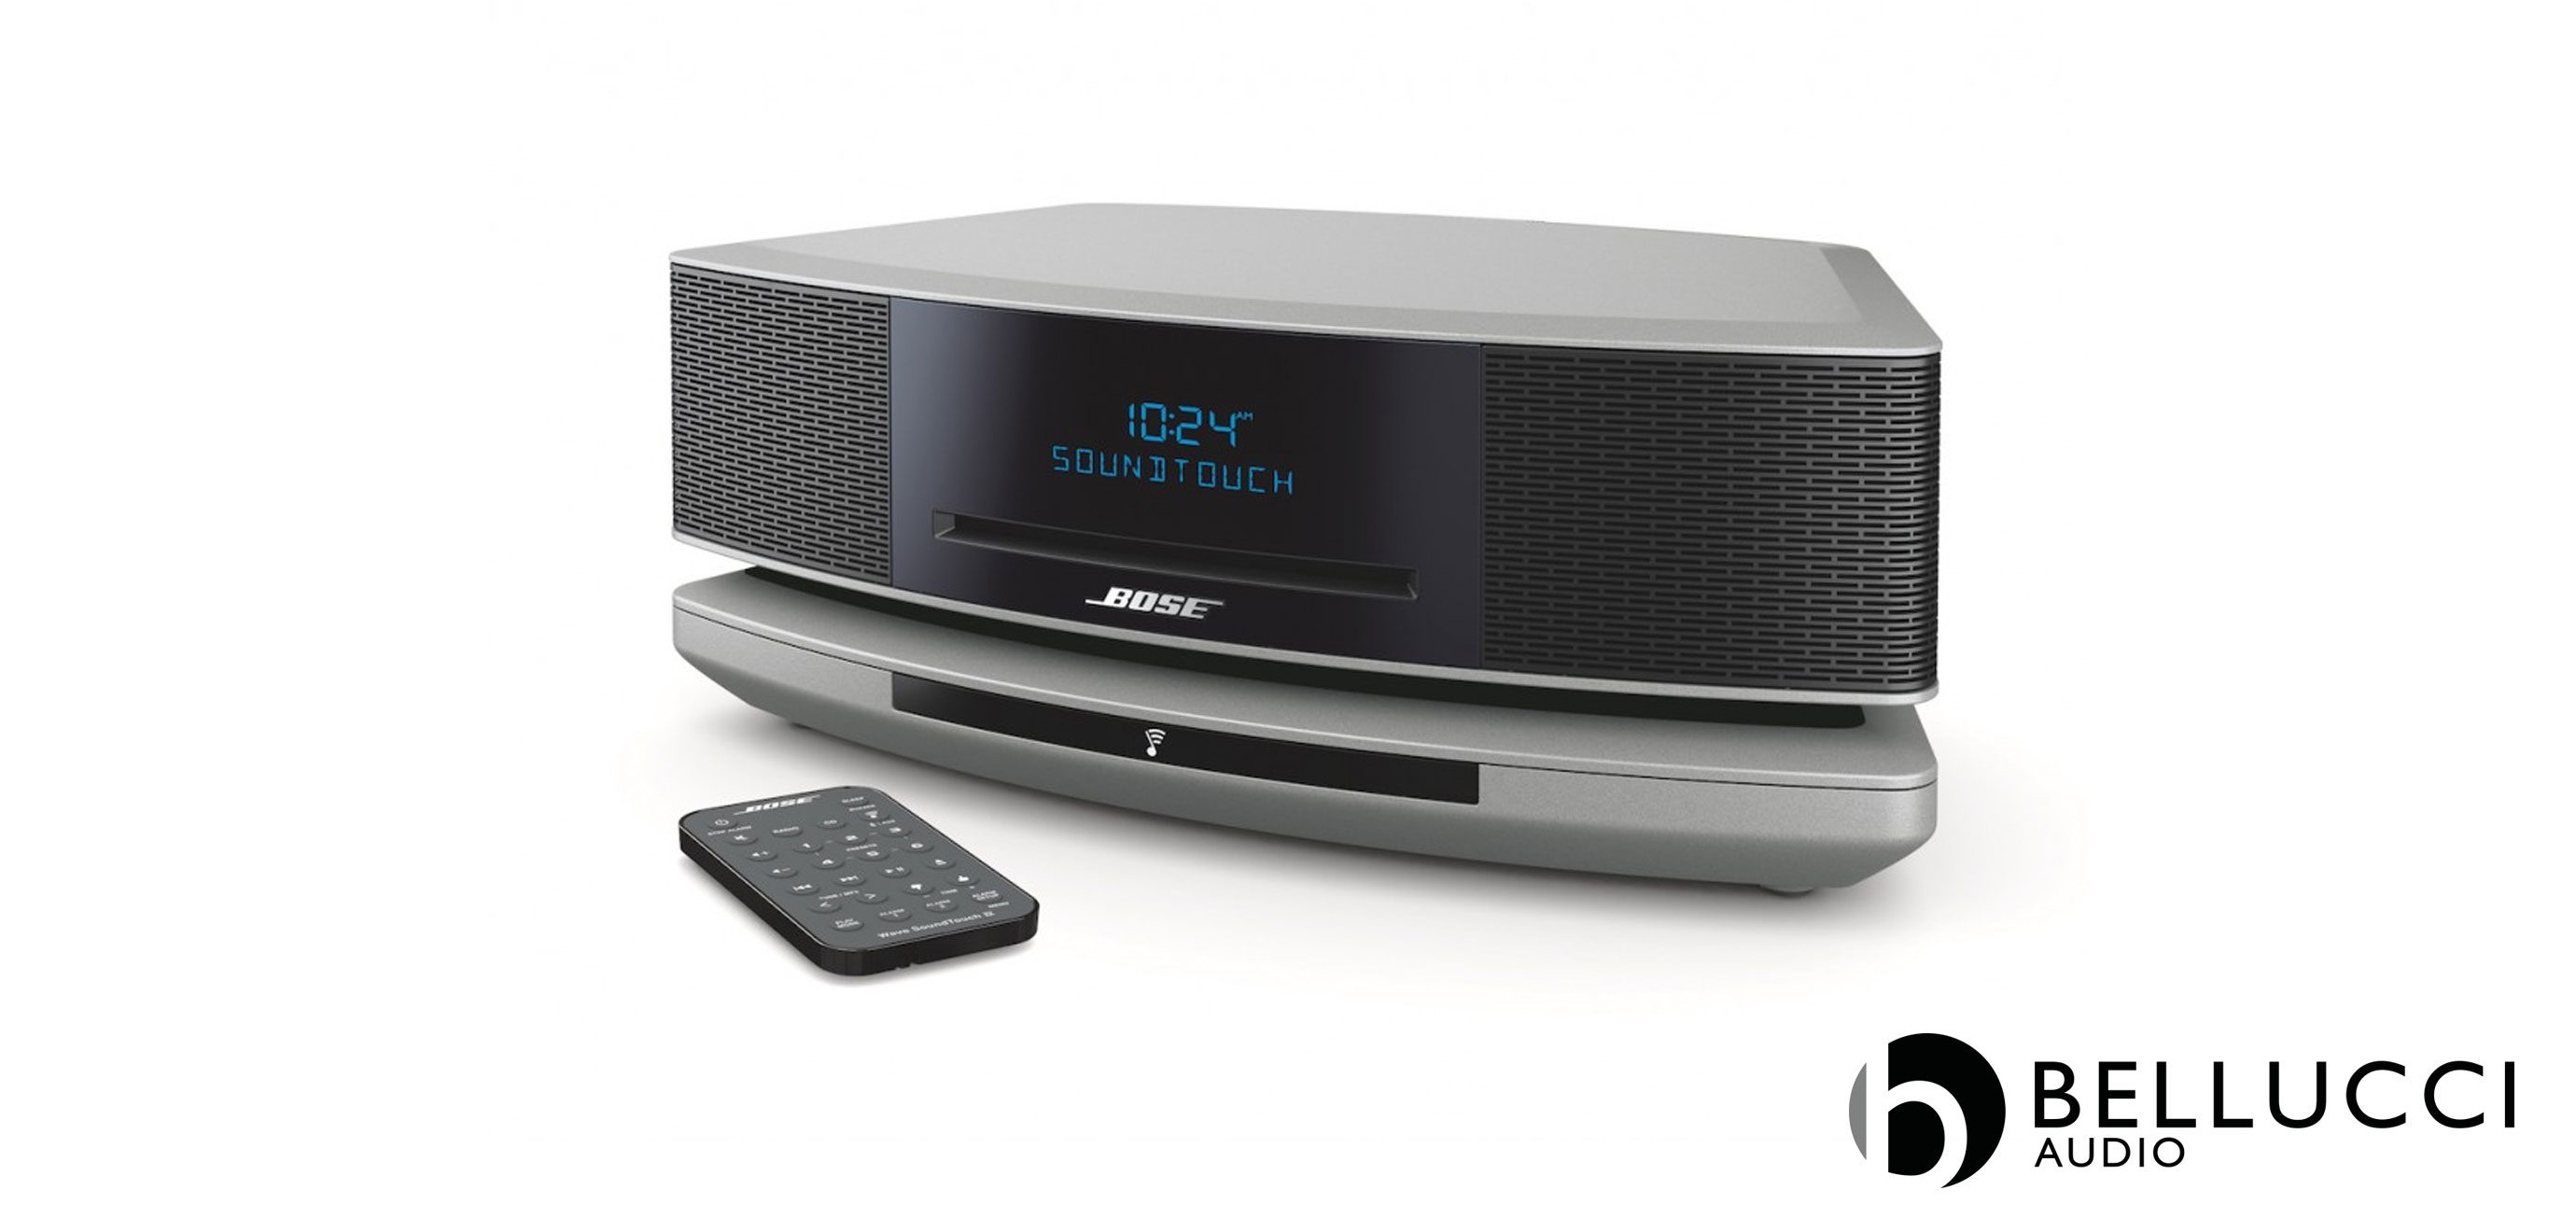 bellucci audio bose wave music system iv soundtouch. Black Bedroom Furniture Sets. Home Design Ideas